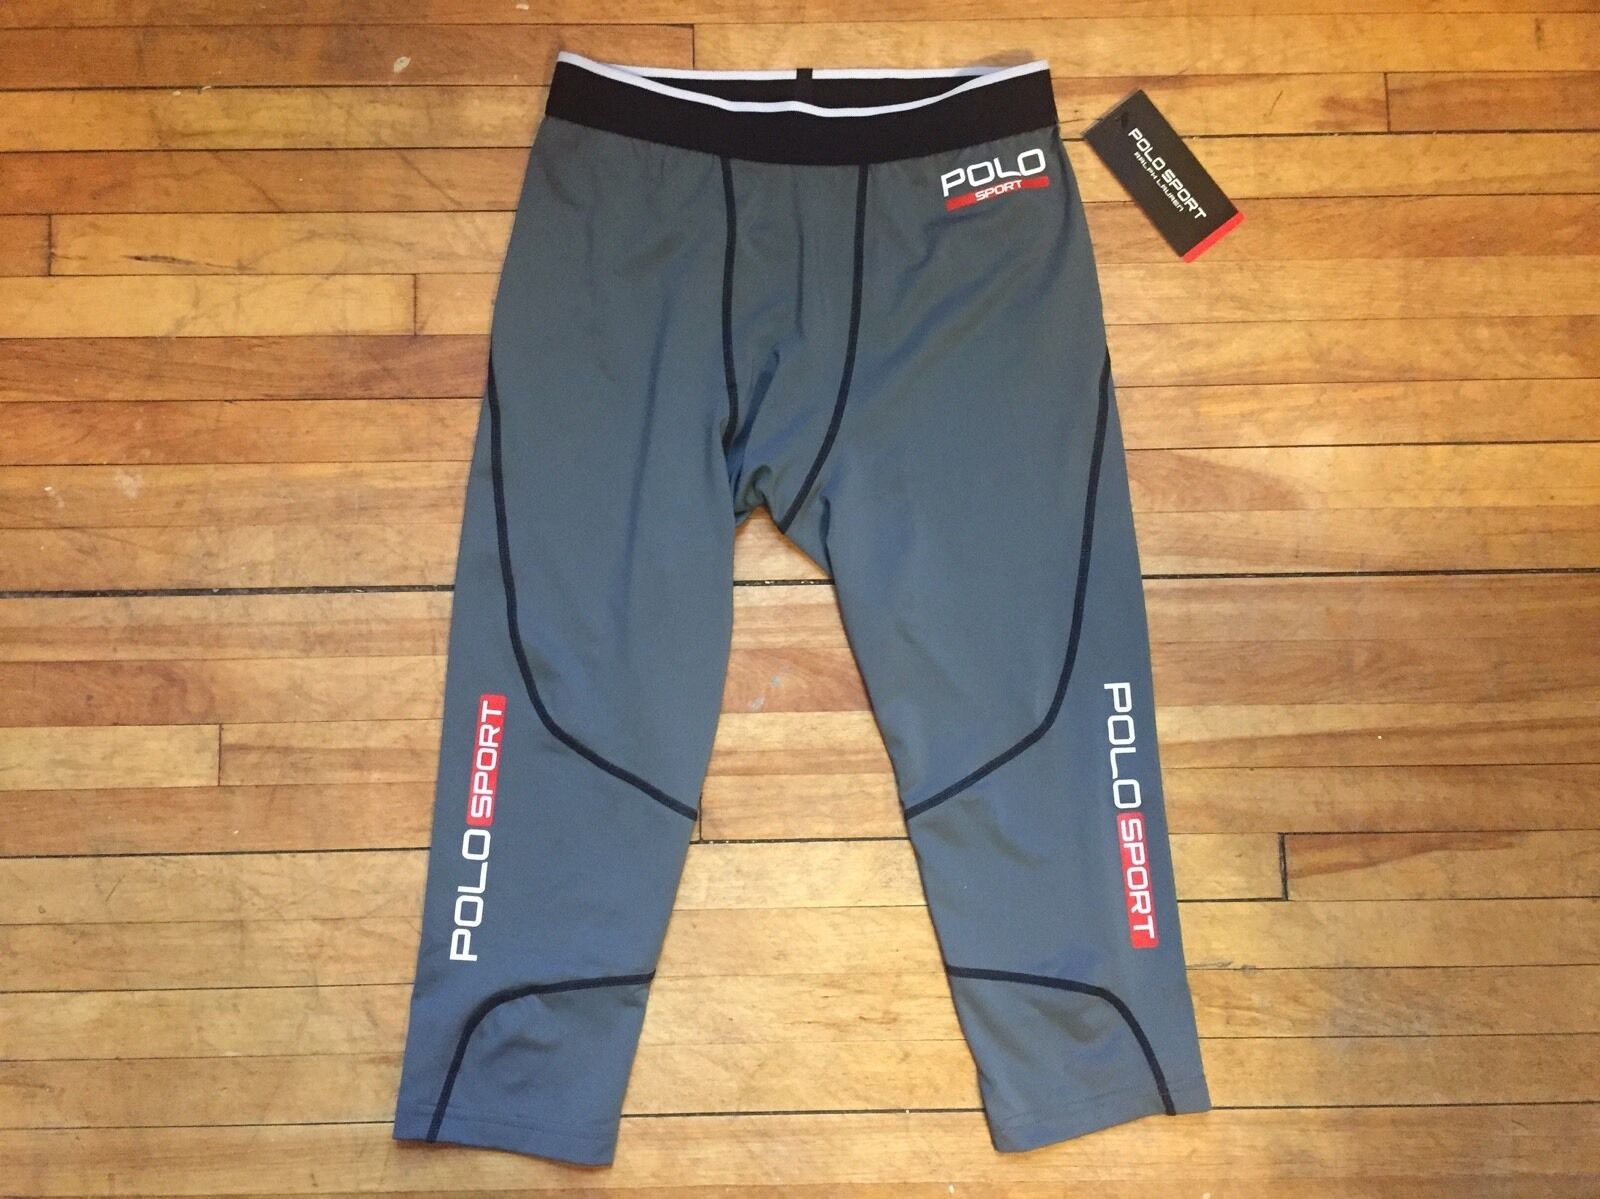 RALPH LAUREN POLO SPORT COOL WORKOUT grau COMPRESSION TIGHTS S M GYM RUN